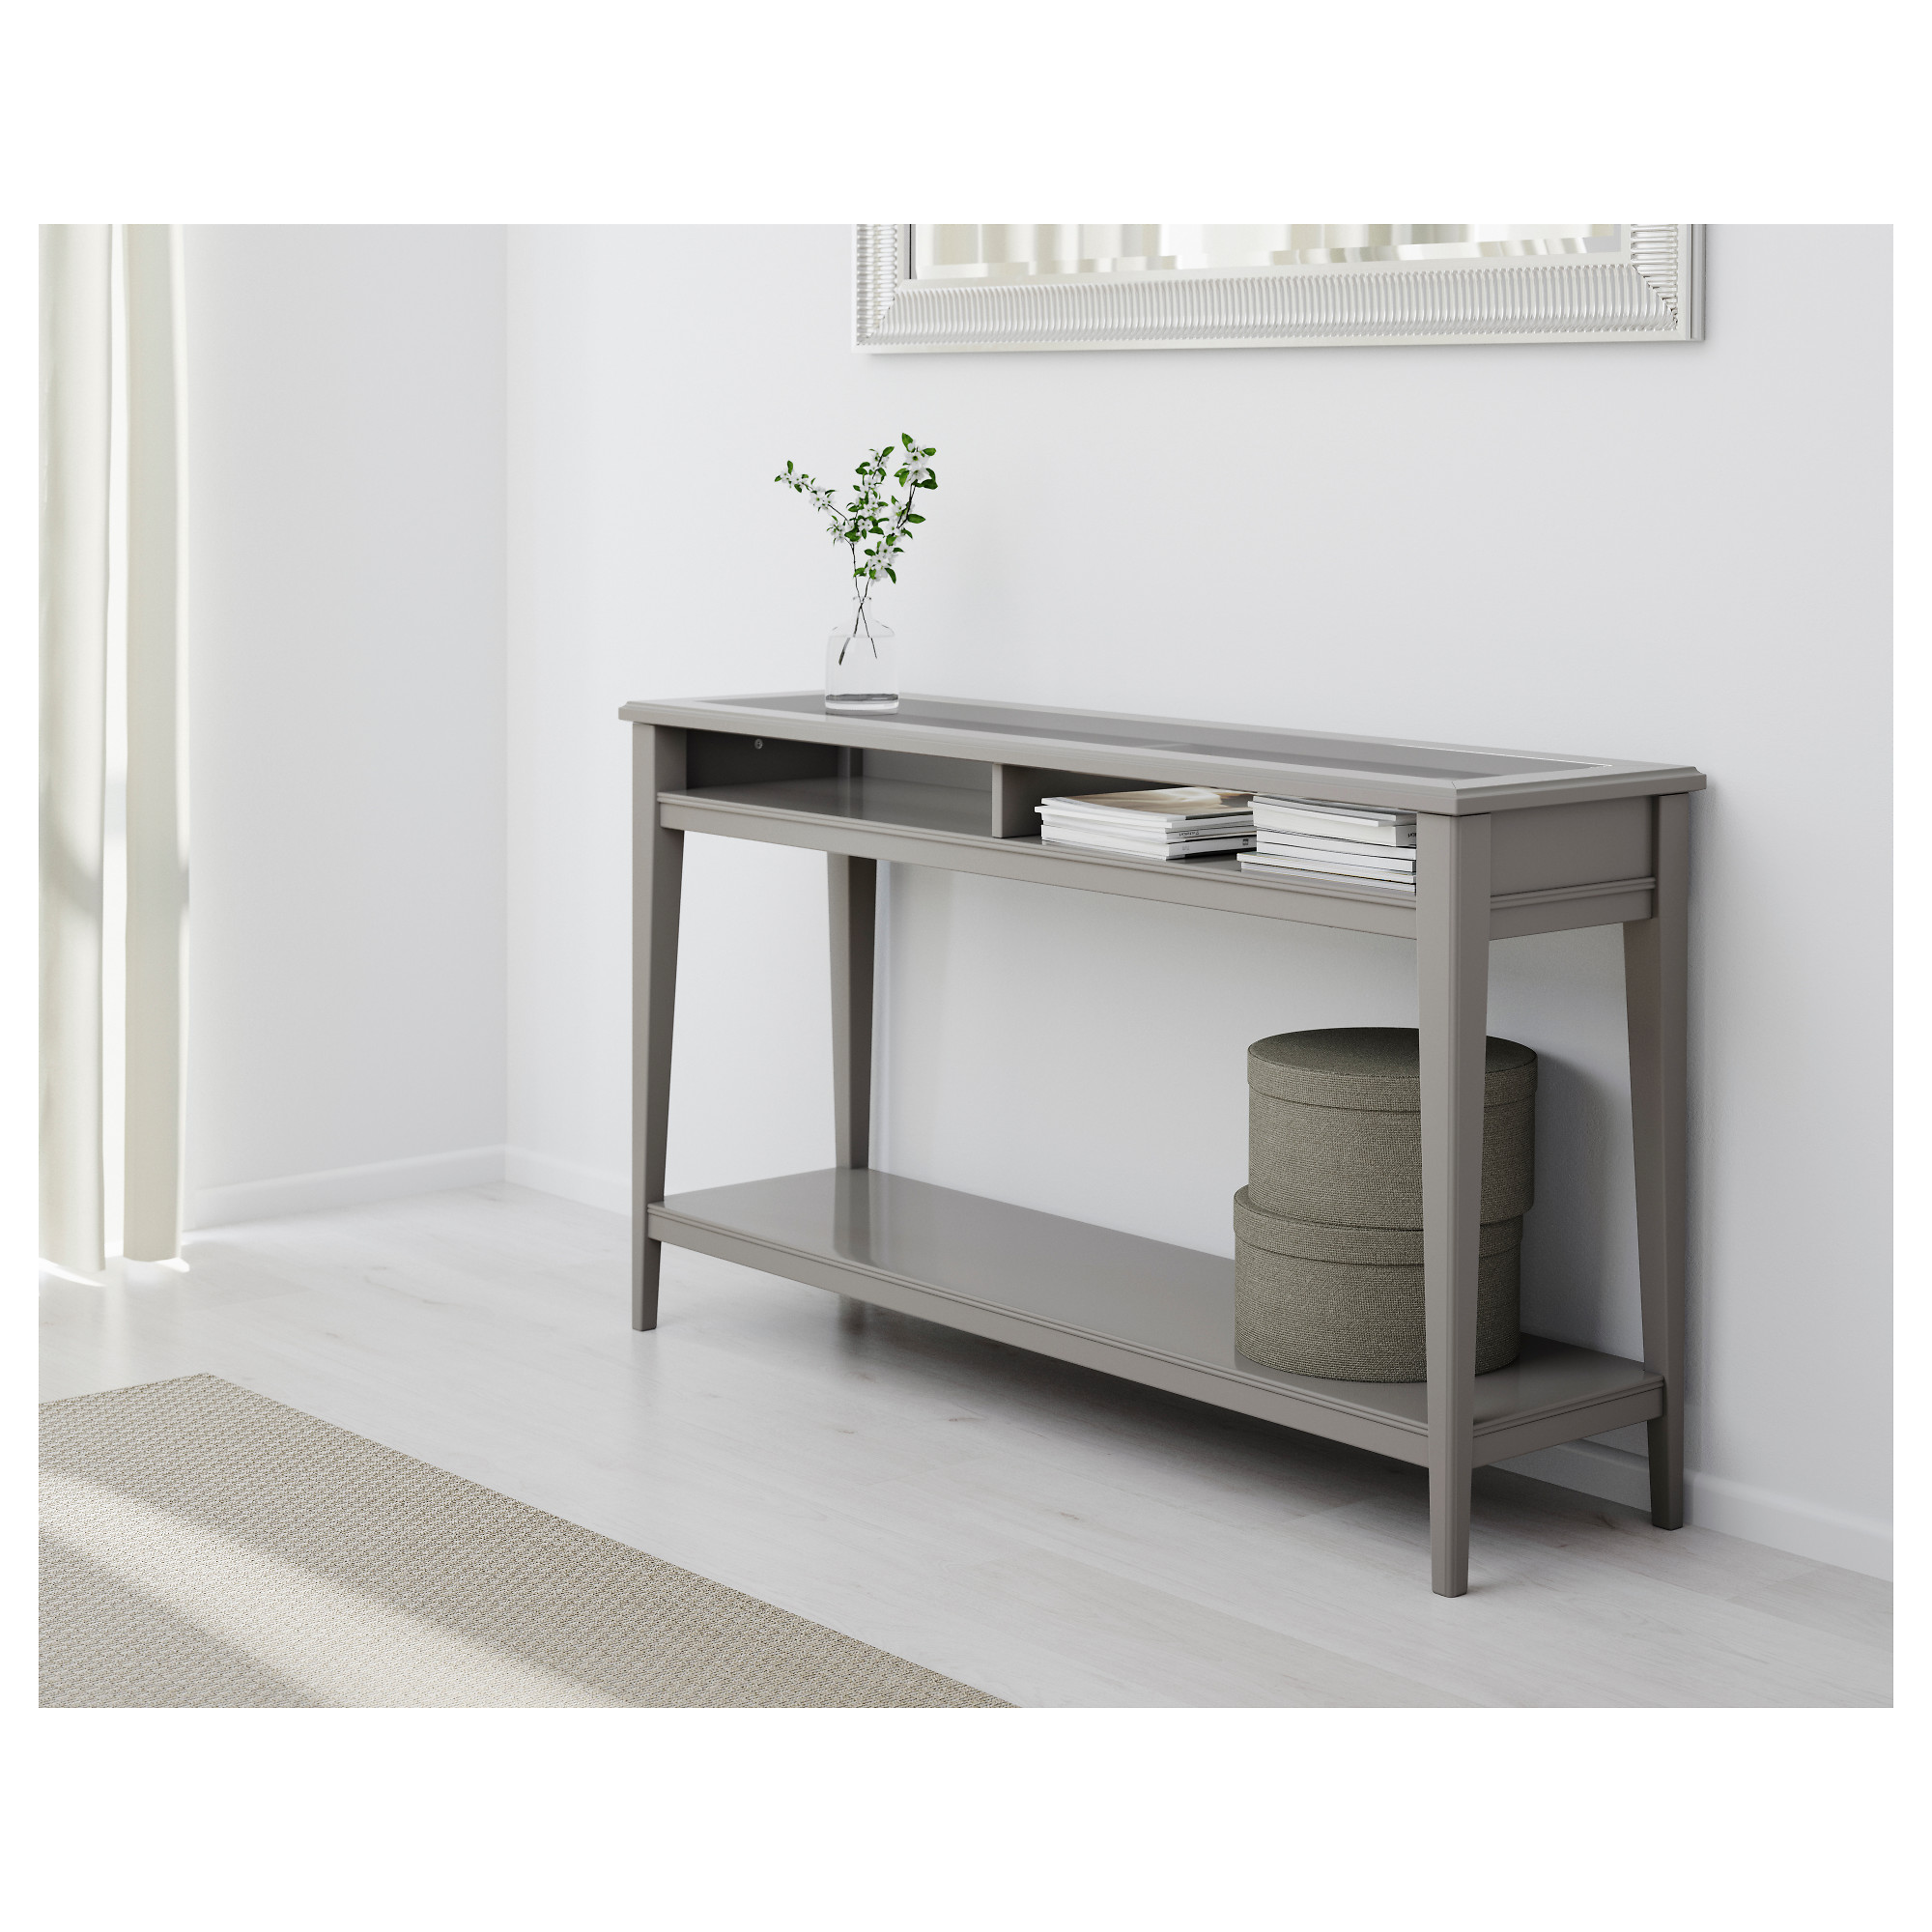 White Console Table Ikea -